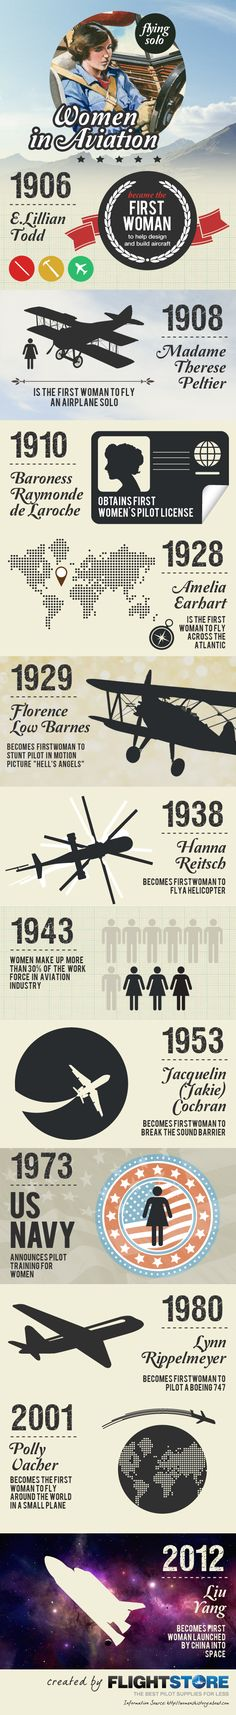 Women In Aviation [INFOGRAPHIC] #women #aviation